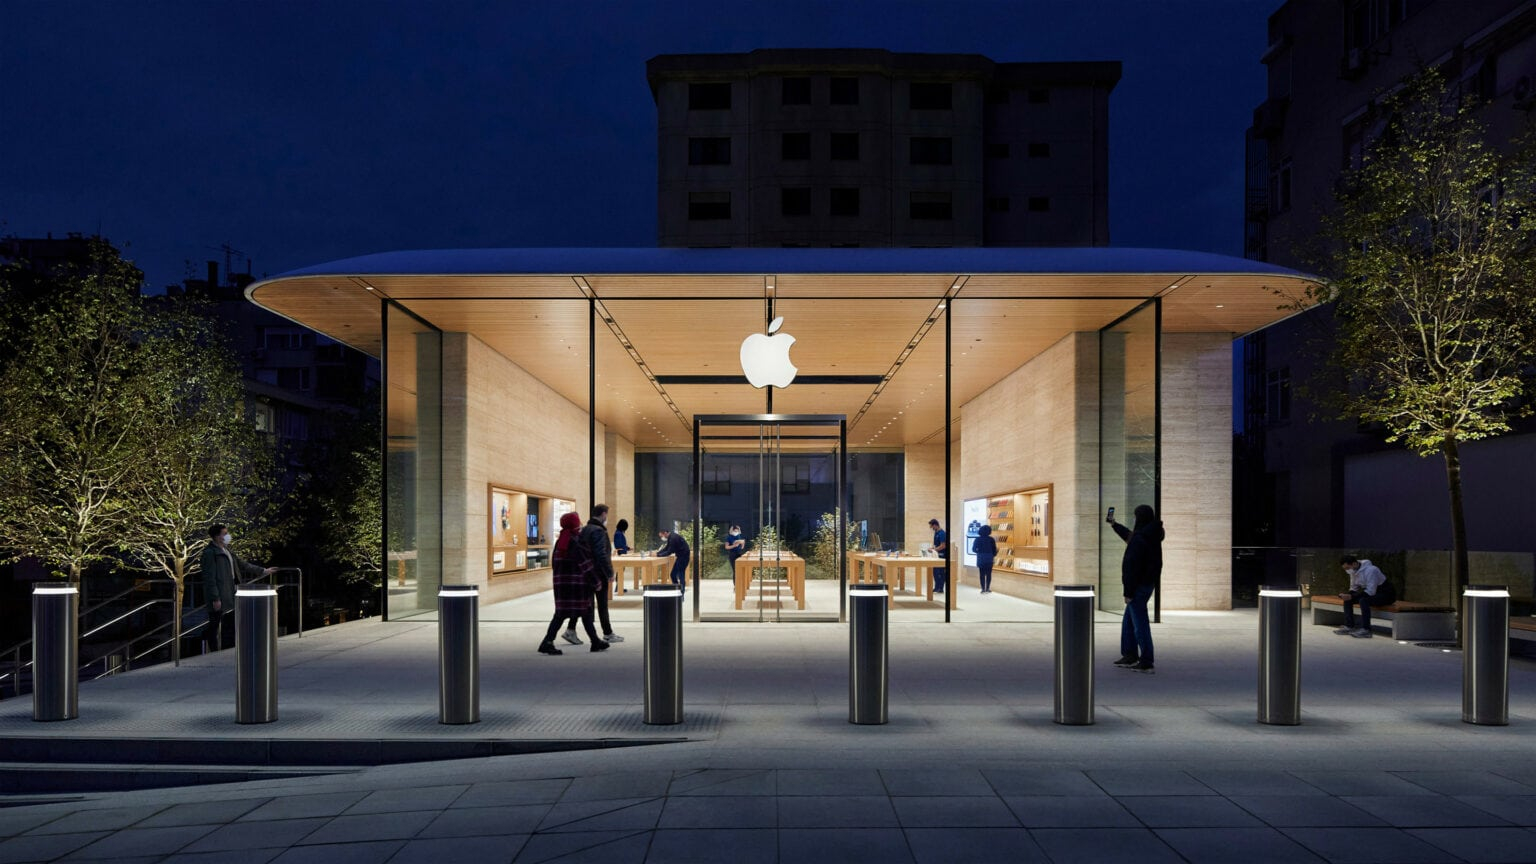 Apple Bağdat Caddesi opens as Apple's third retail location in Turkey, situated in Istanbul.